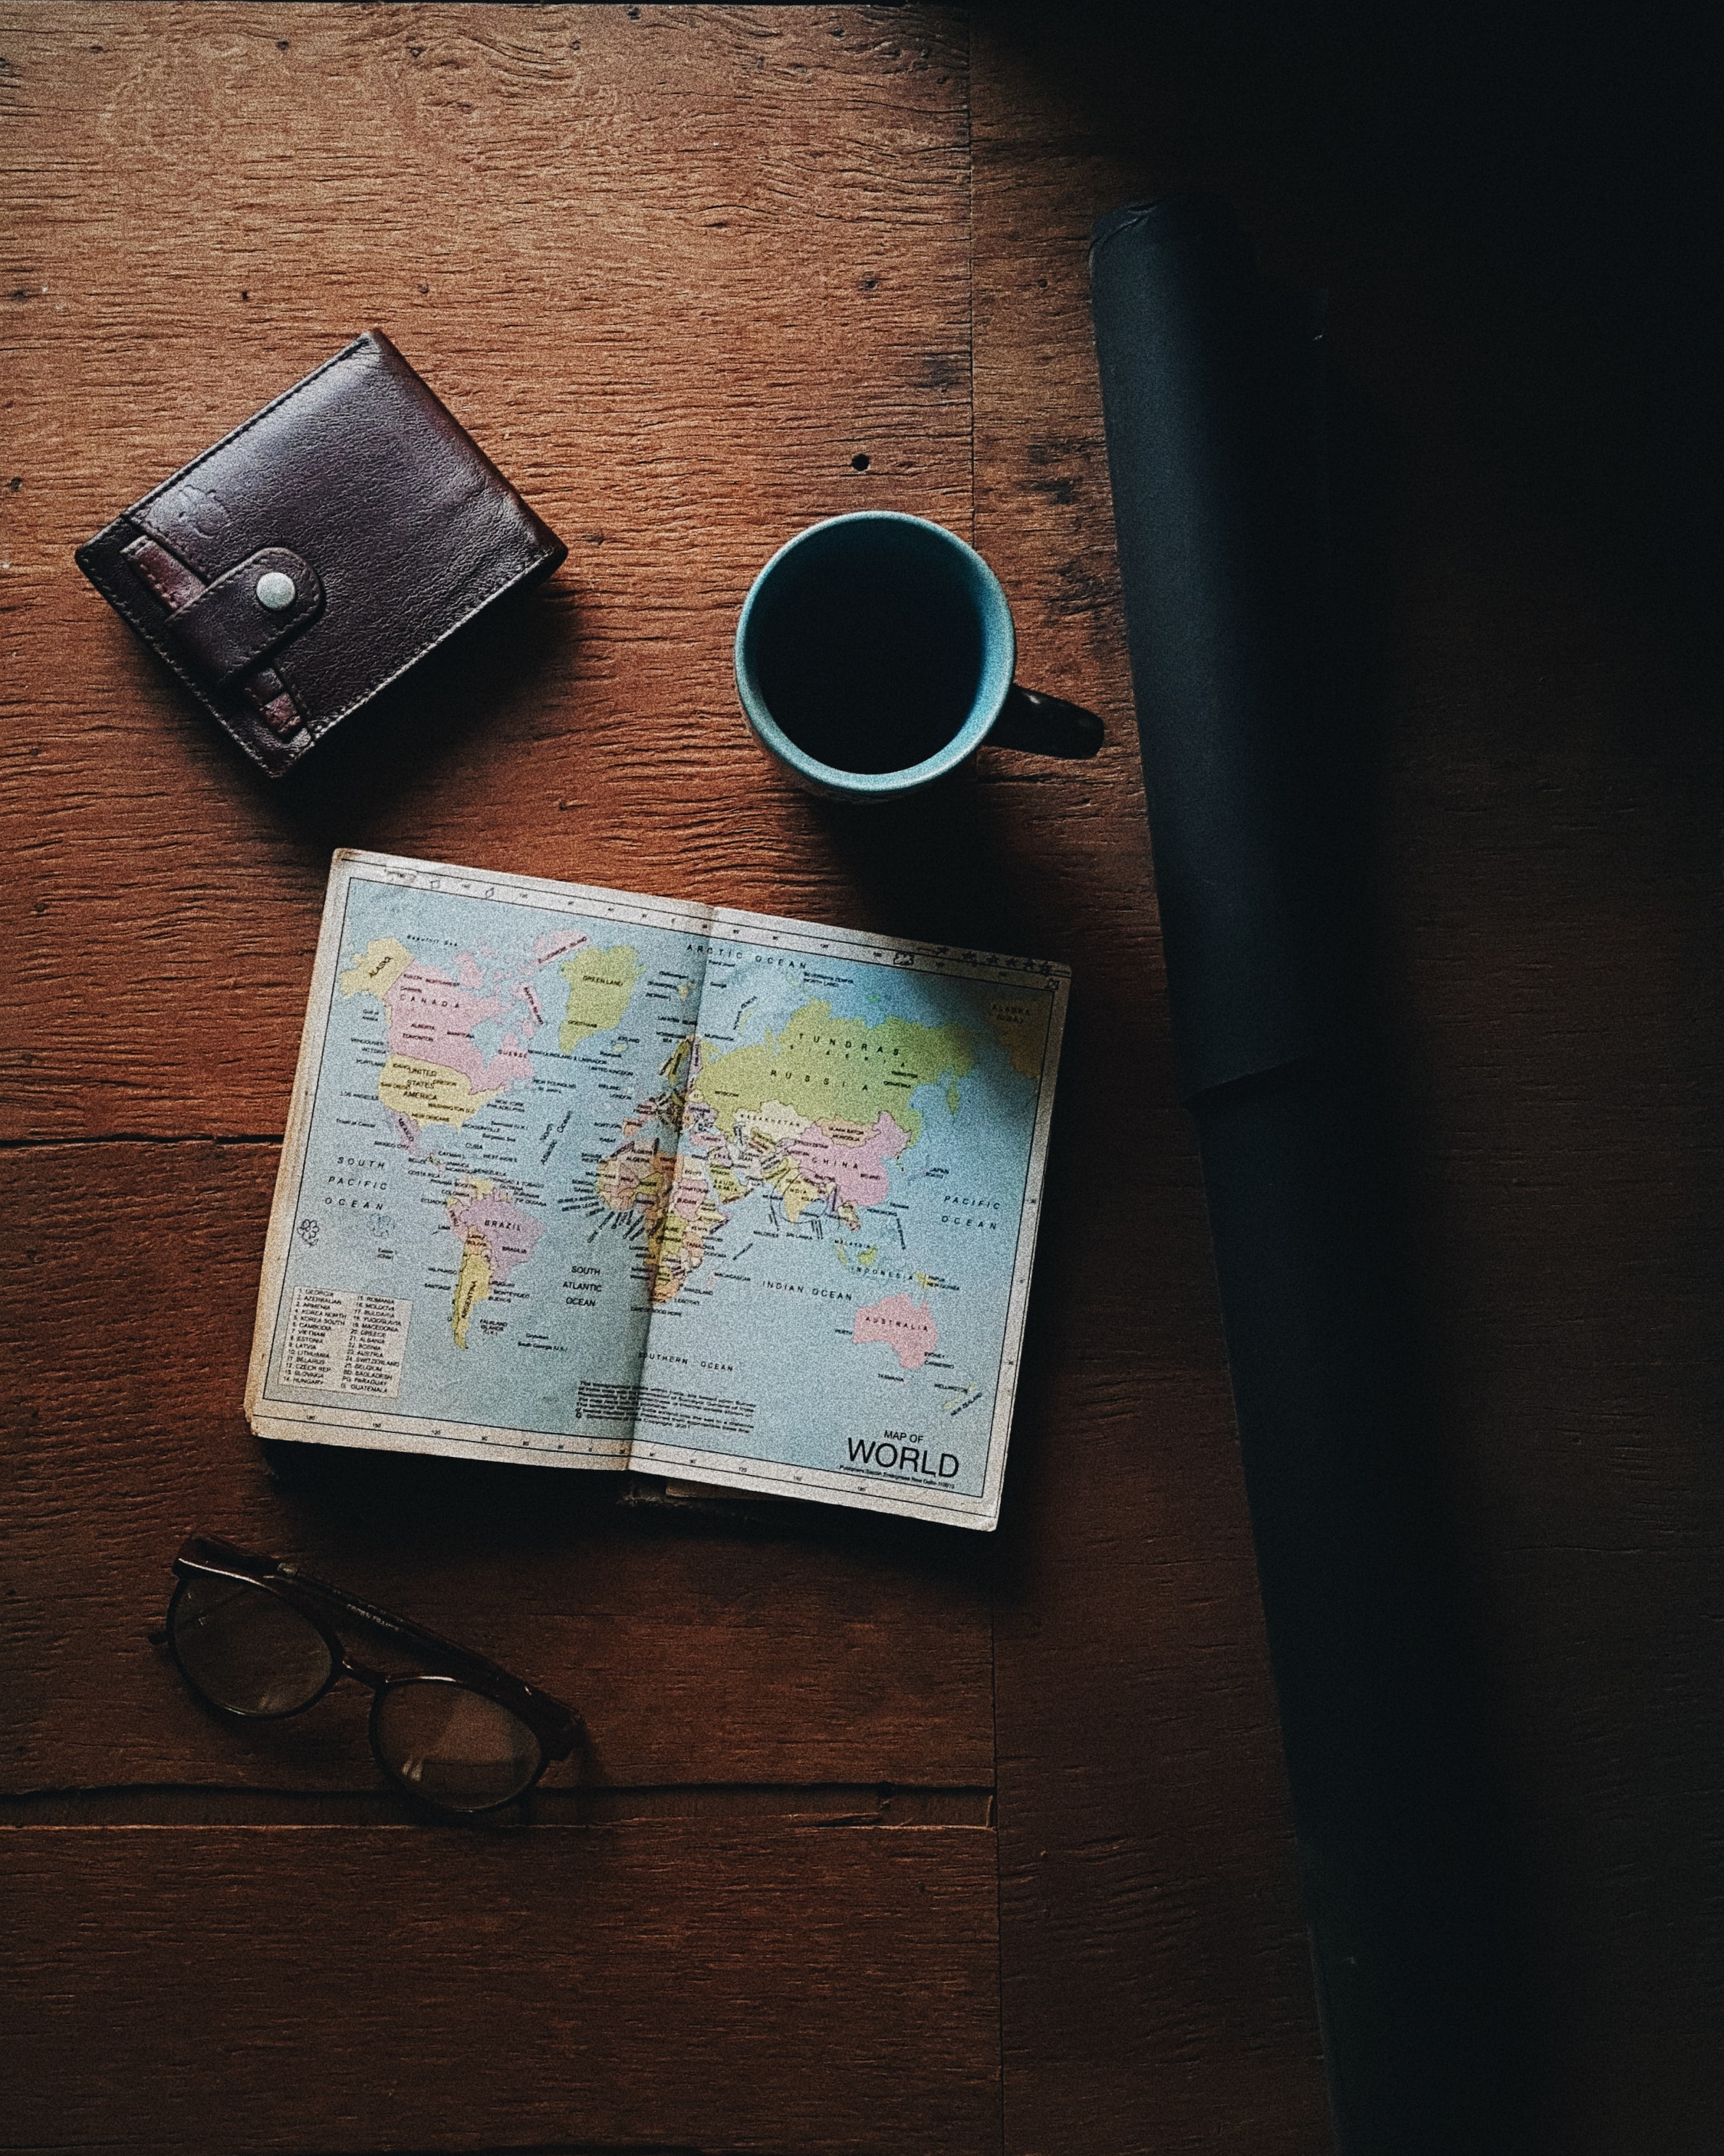 world map beside blue and black ceramic mug